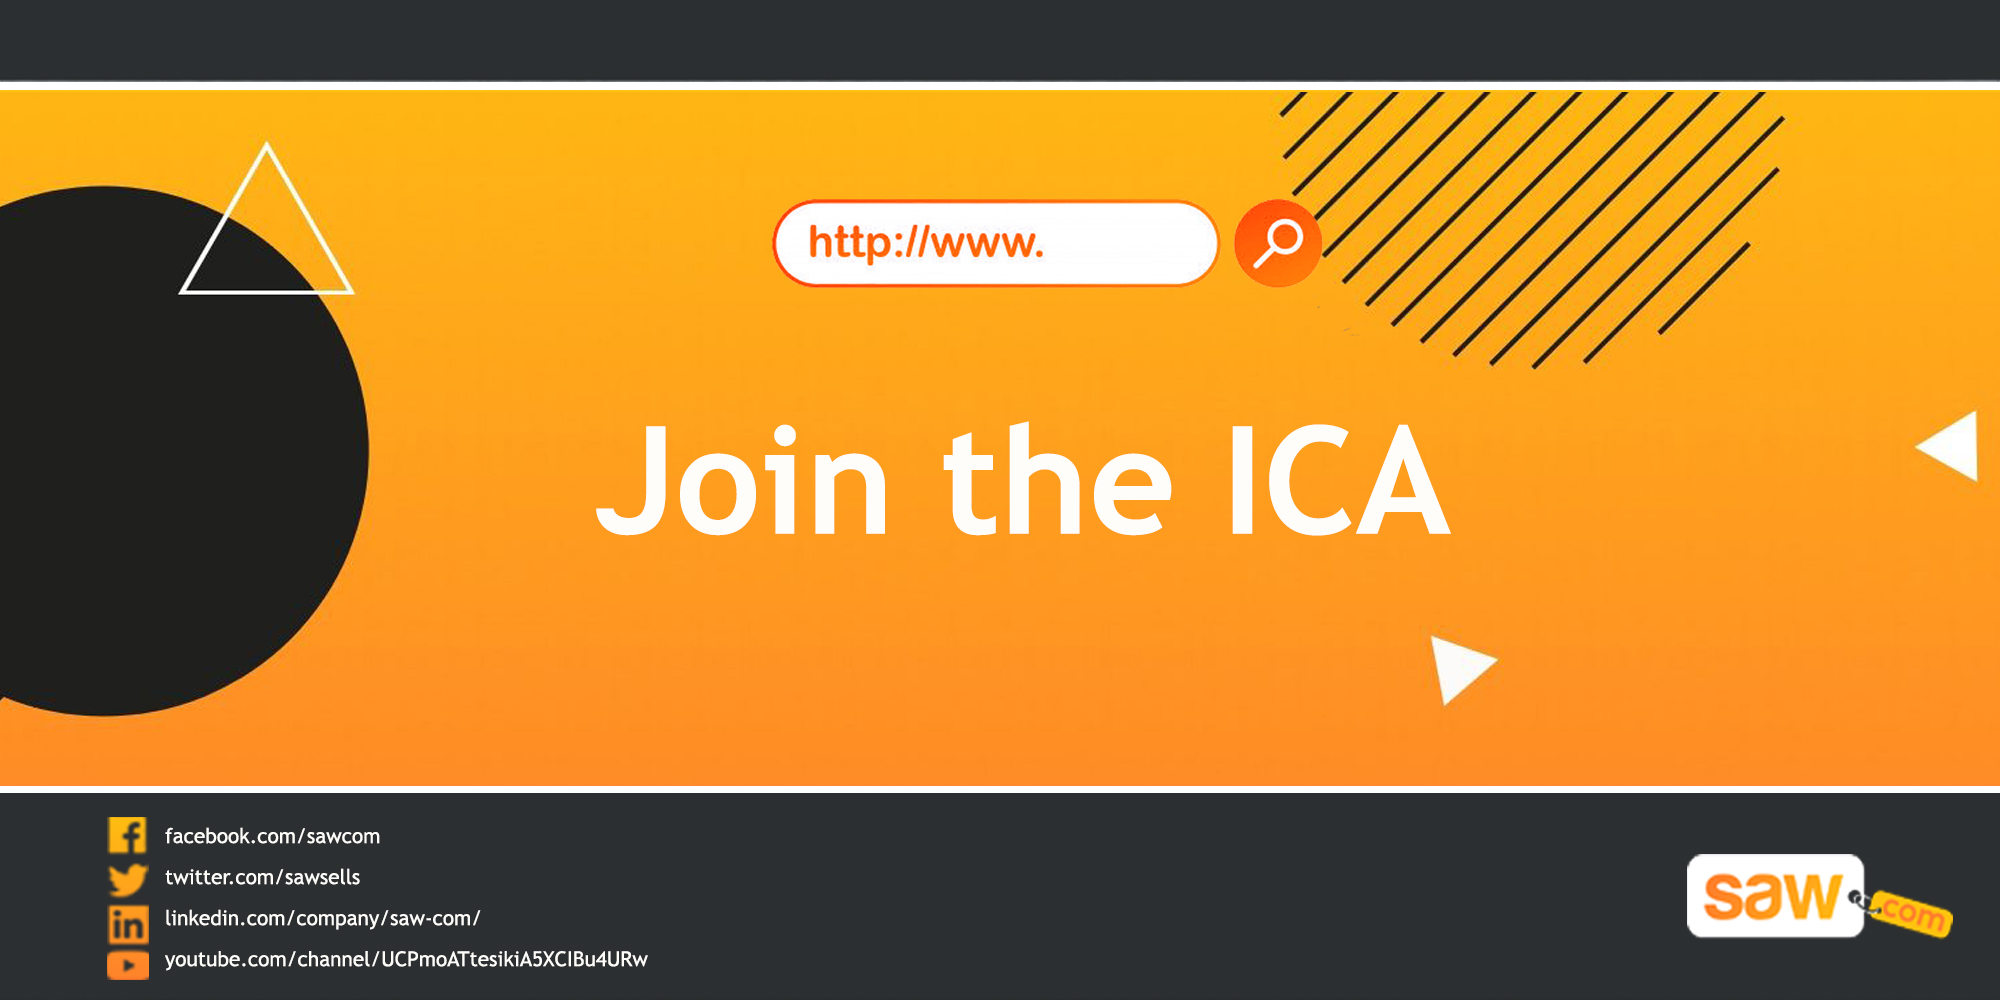 Saw Video – Join the ICA